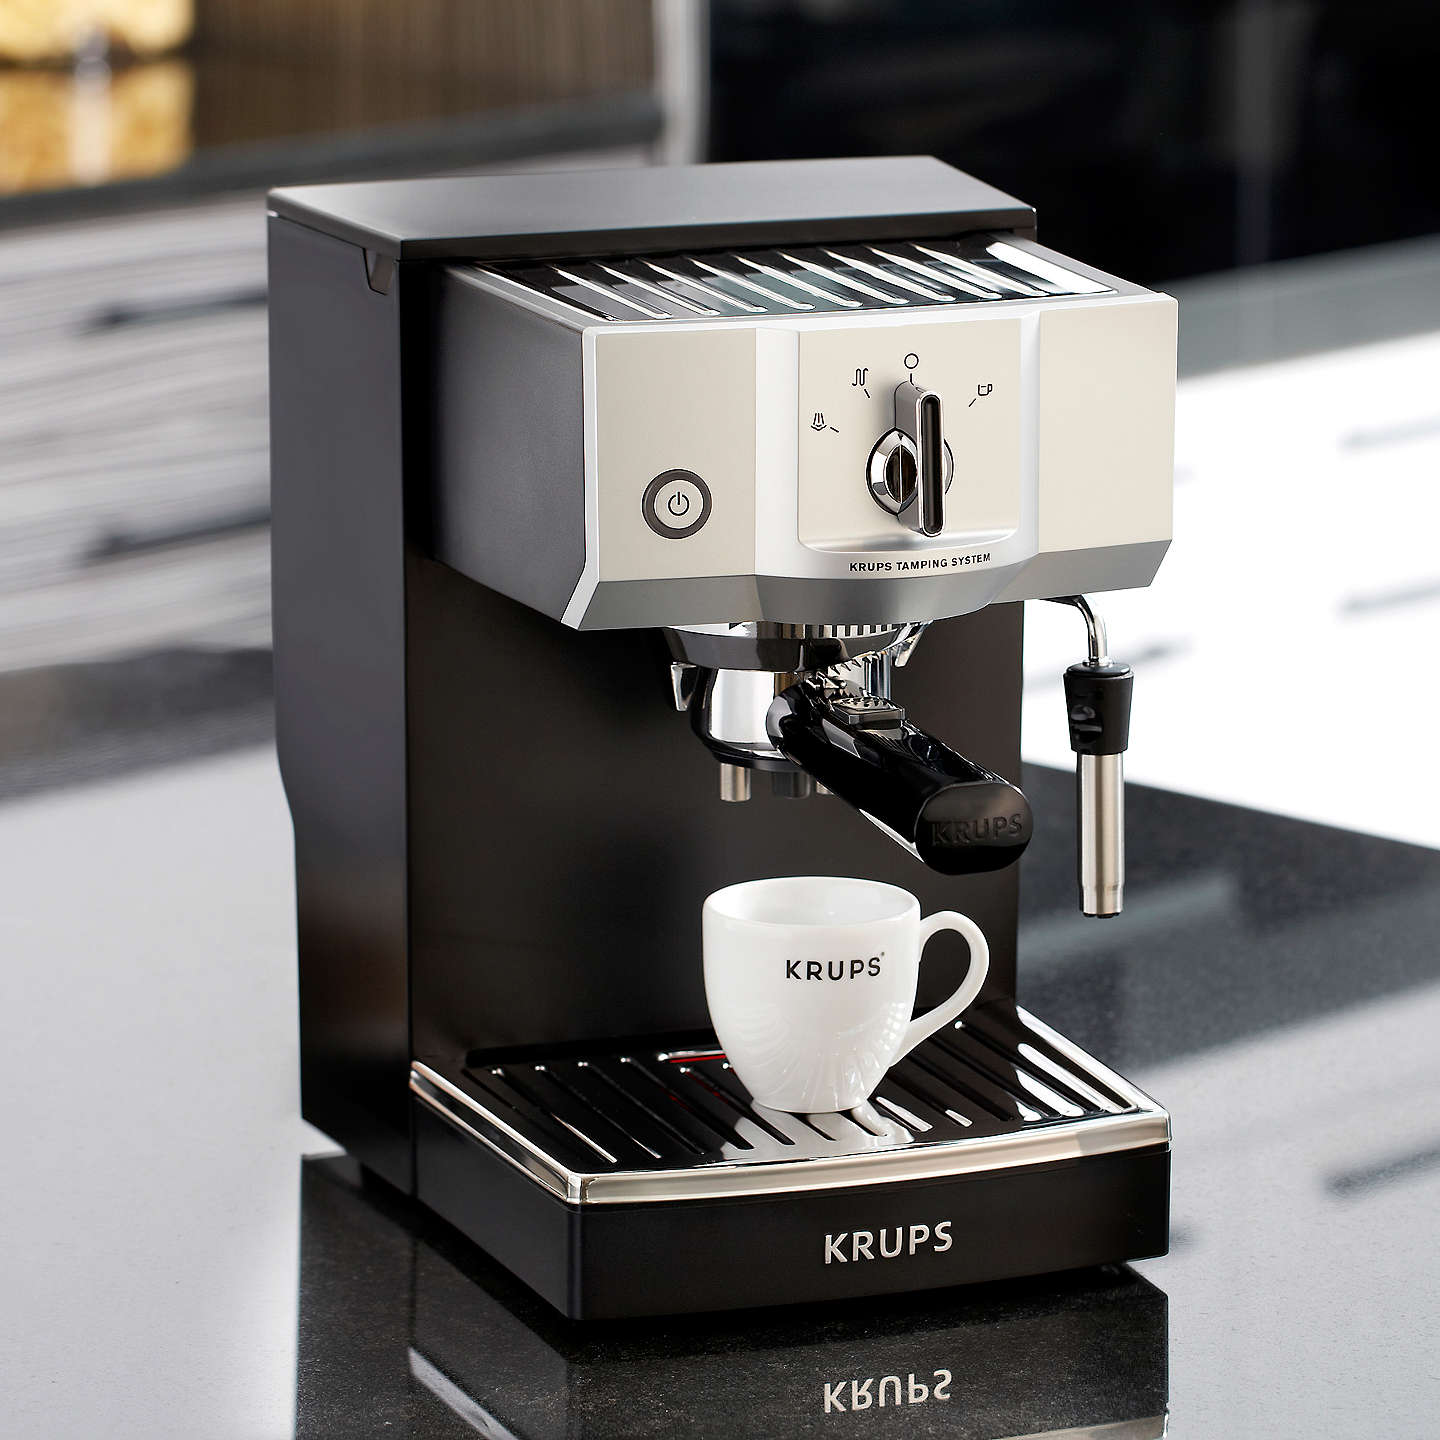 krups xp5620 espresso coffee machine black at john lewis. Black Bedroom Furniture Sets. Home Design Ideas